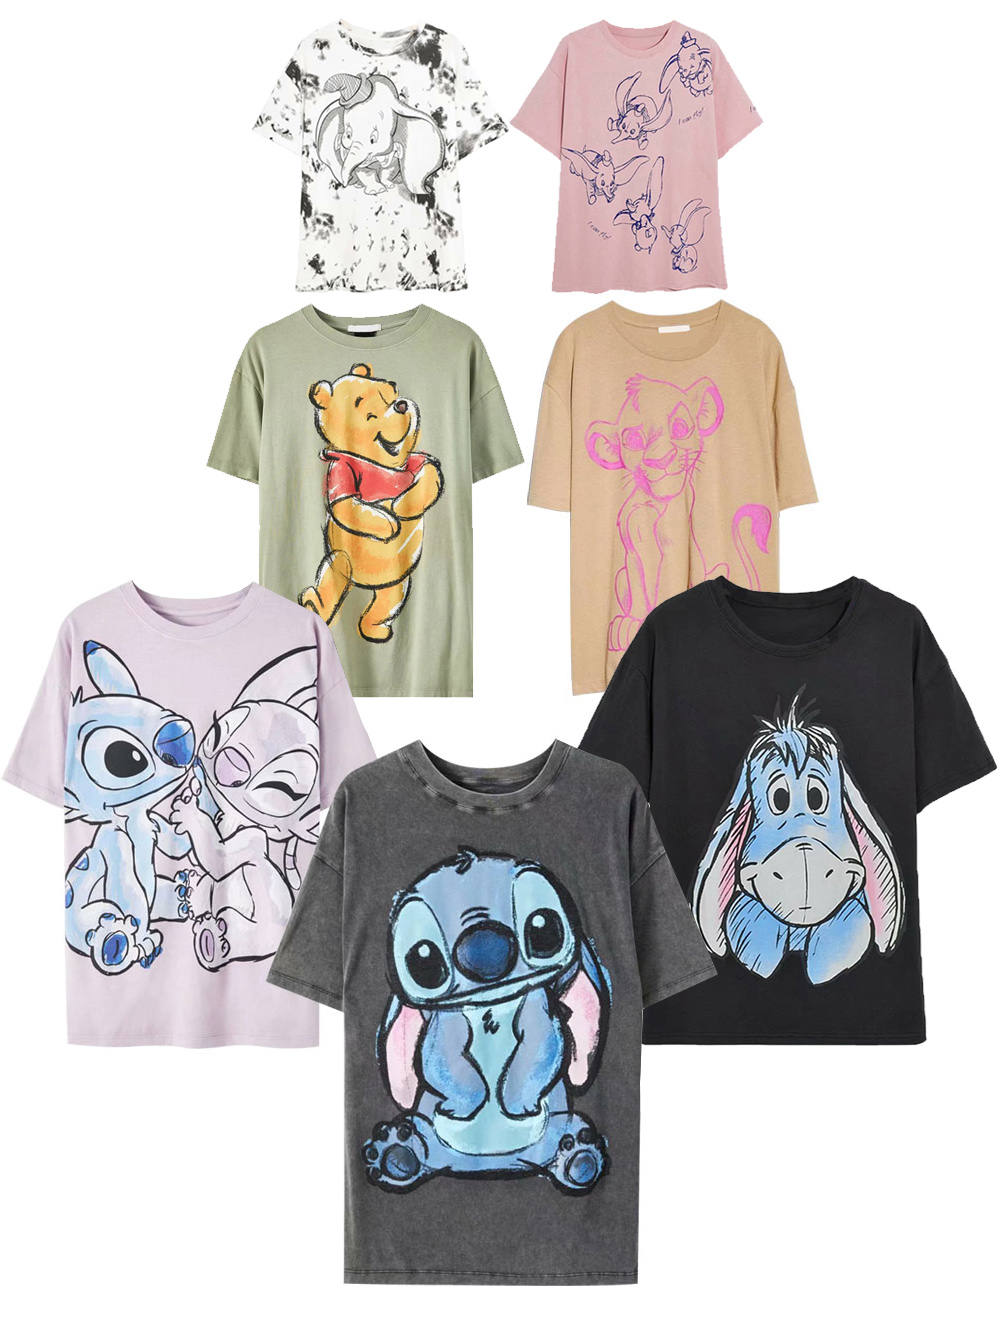 T-Shirt Fashion Tee-Tops Stitch SIMBA Mickey Mouse Fairy Pooh Winnie Family Cartoon Print